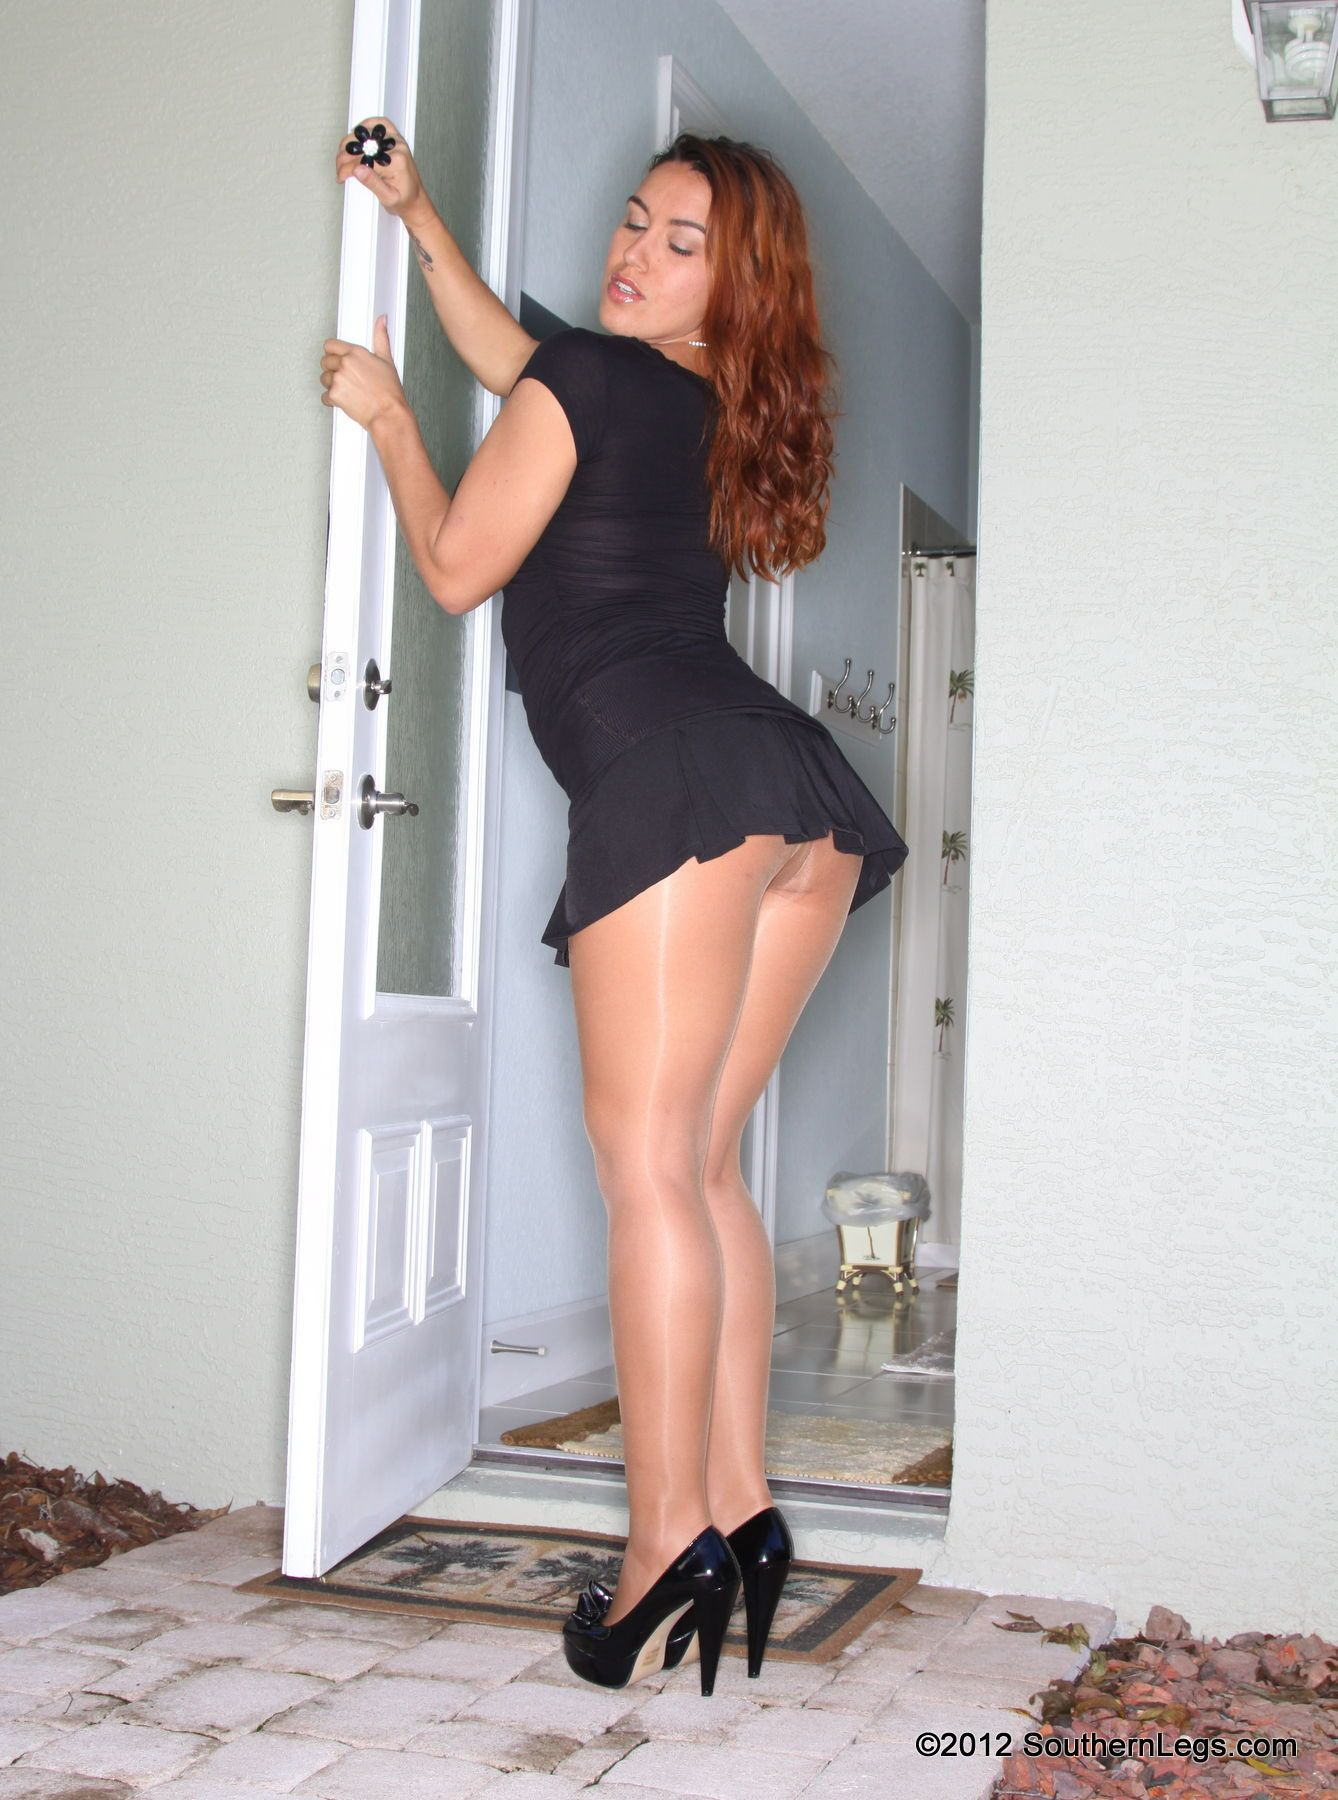 Lookin her hot model pantyhose you much.&nbsp